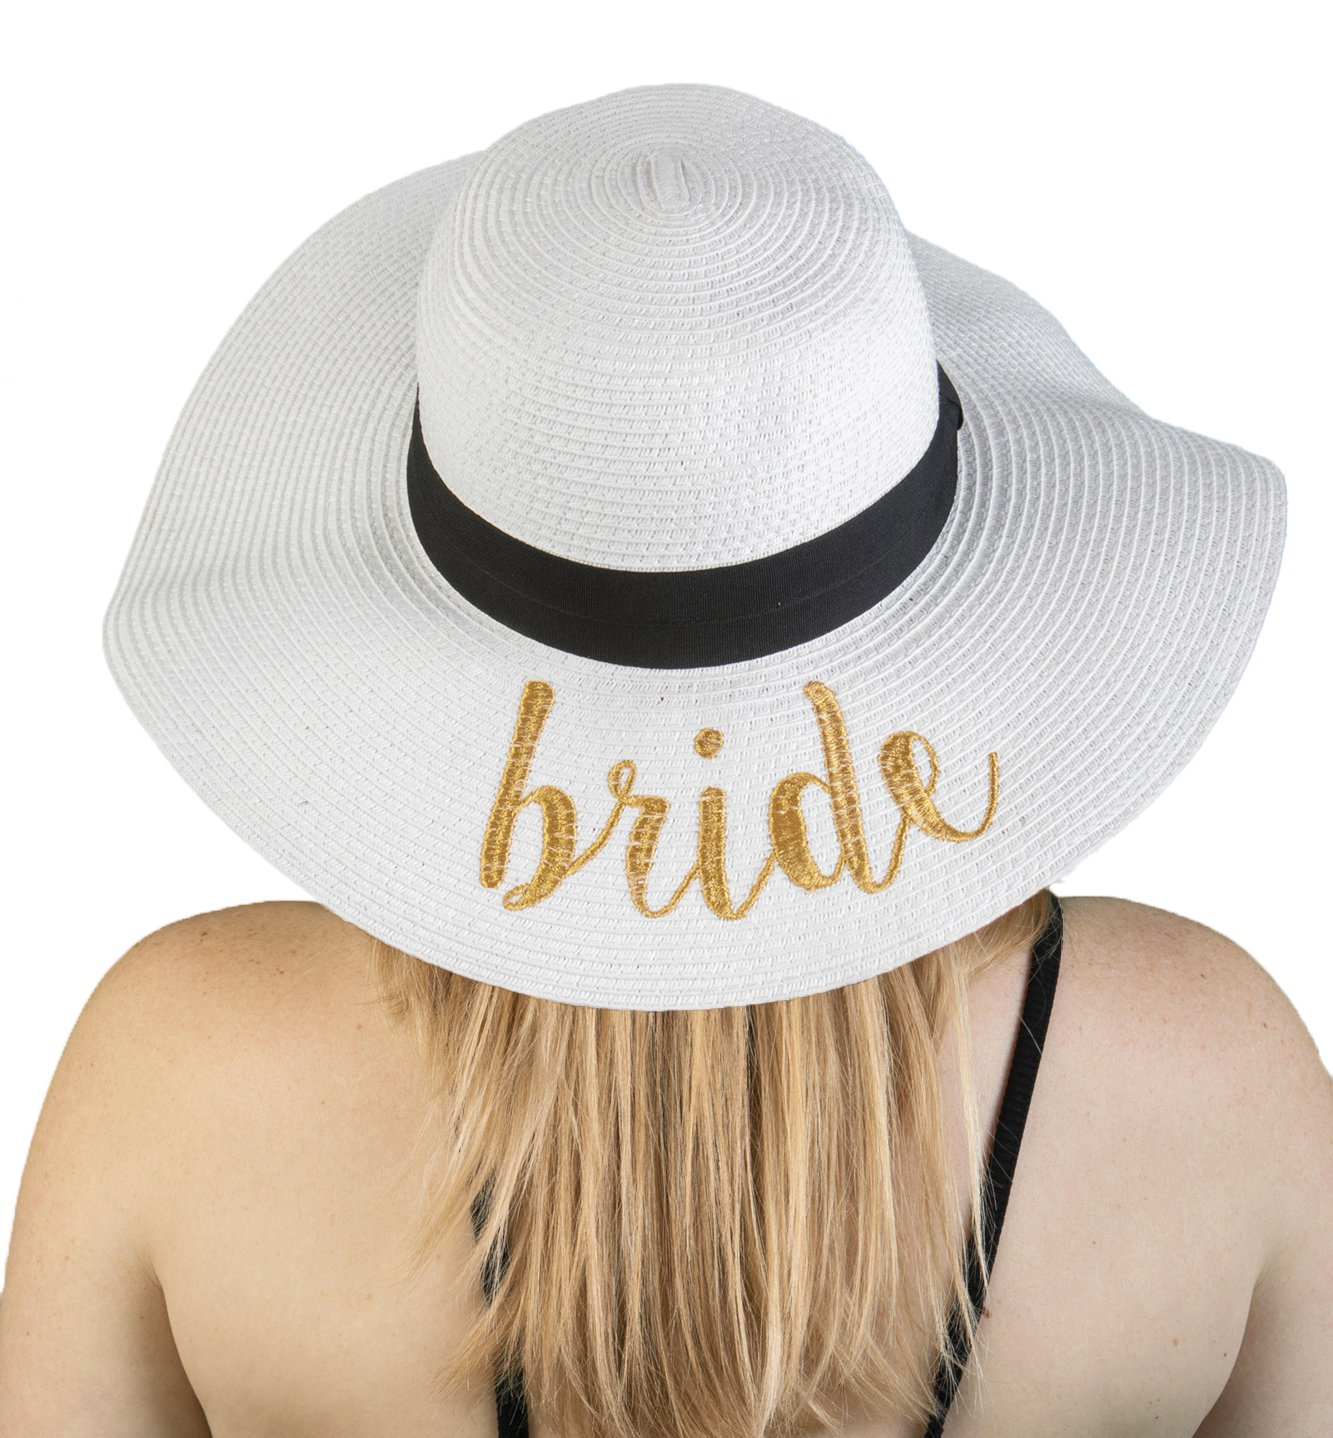 e51d70bd6 Funky Junque Women's Bold Cursive Embroidered Adjustable Beach Floppy Sun  Hat - Frolic